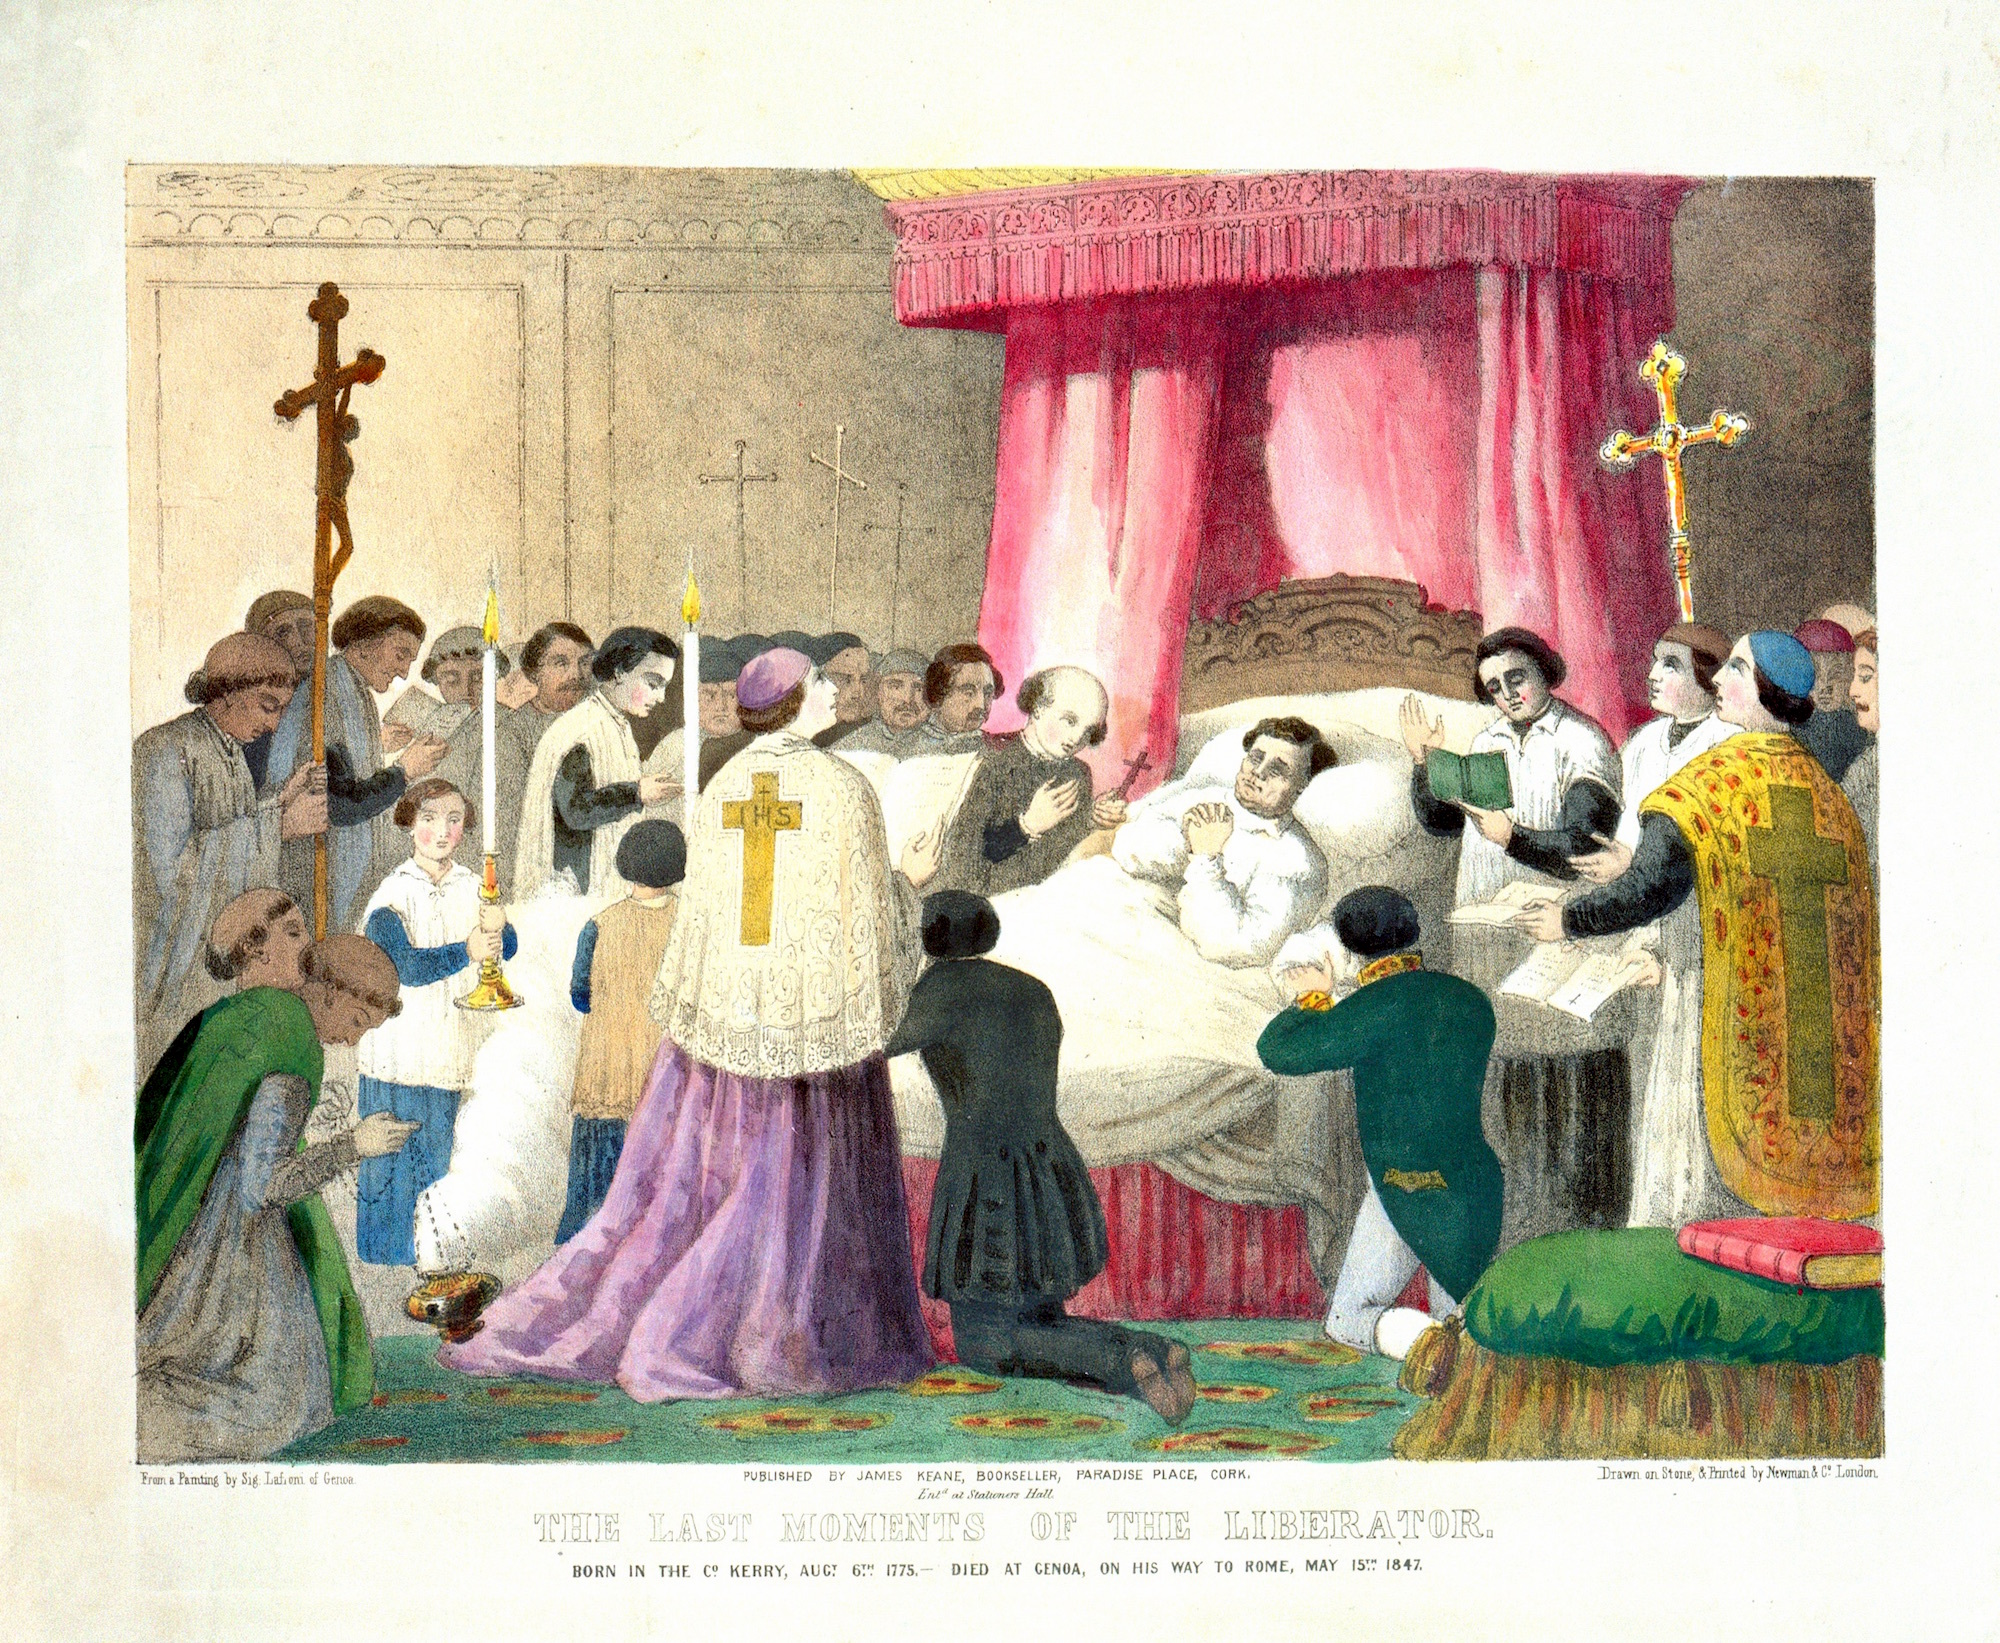 Daniel O'Connell on his deathbed and being given the last rites. He is surrounded by members of the clergy. From a painting by Sig. Lafroni of Genoa. National Library of Ireland.